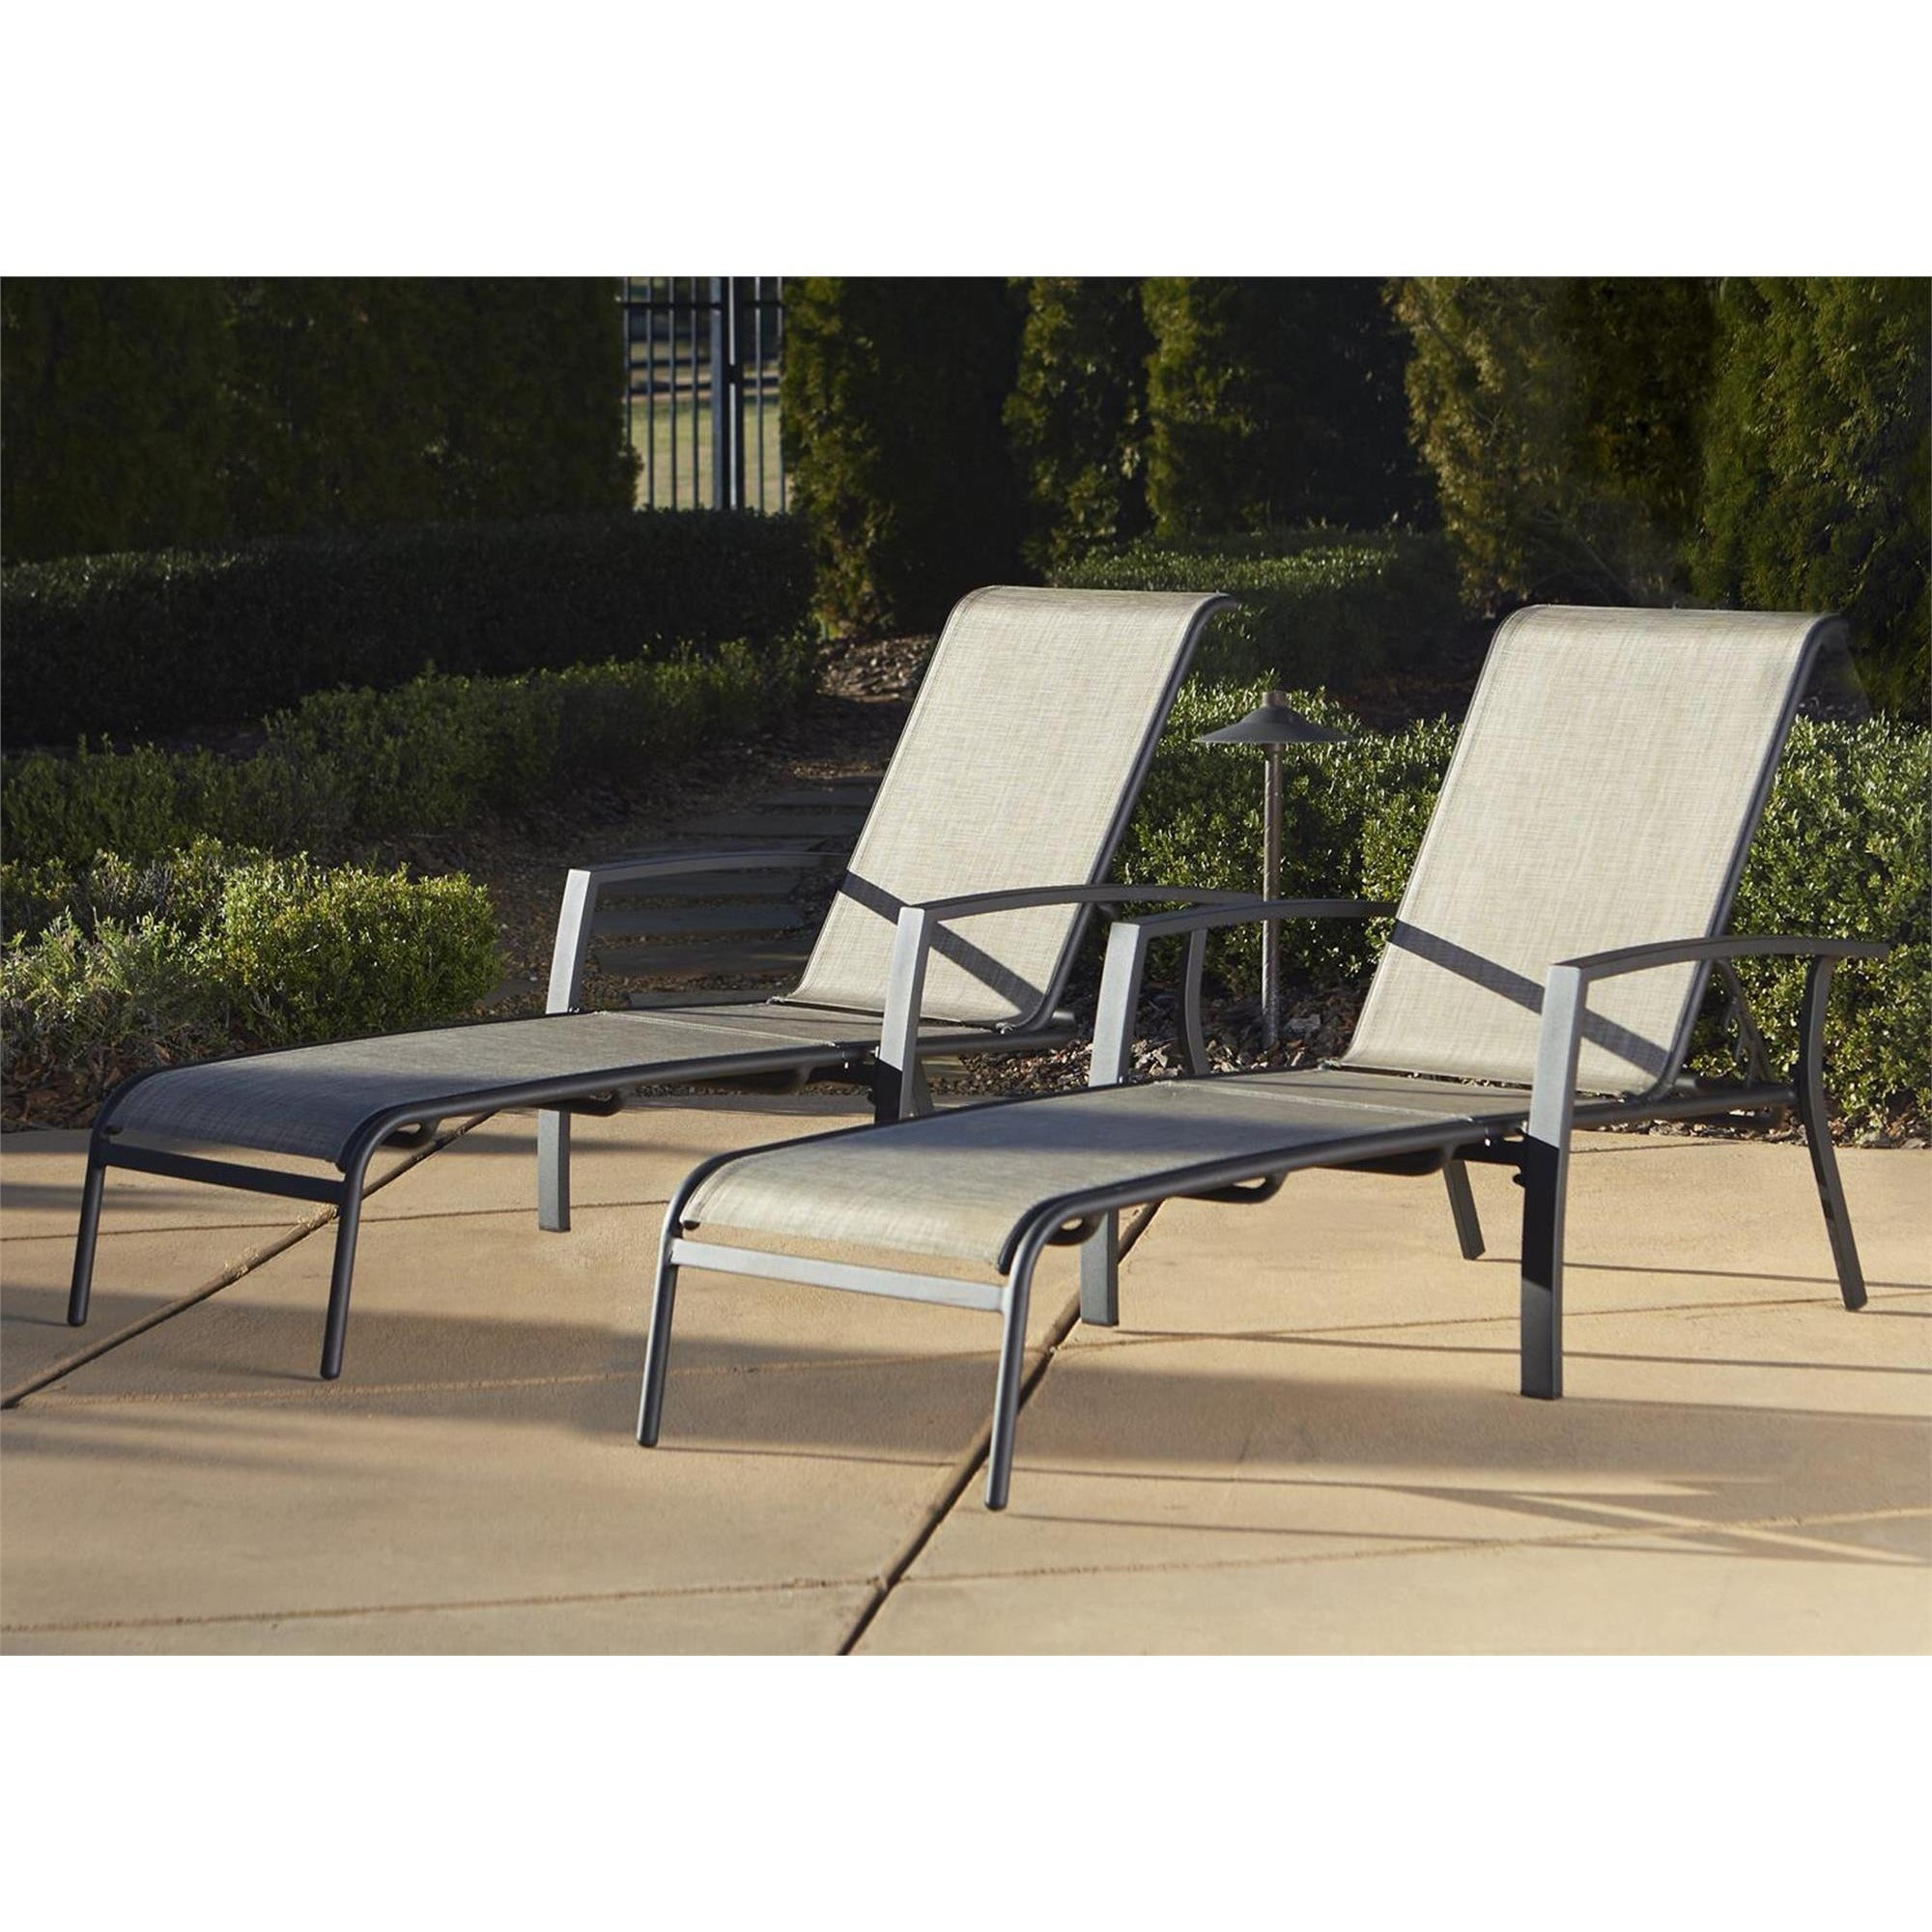 Cosco Outdoor Aluminum Chaise